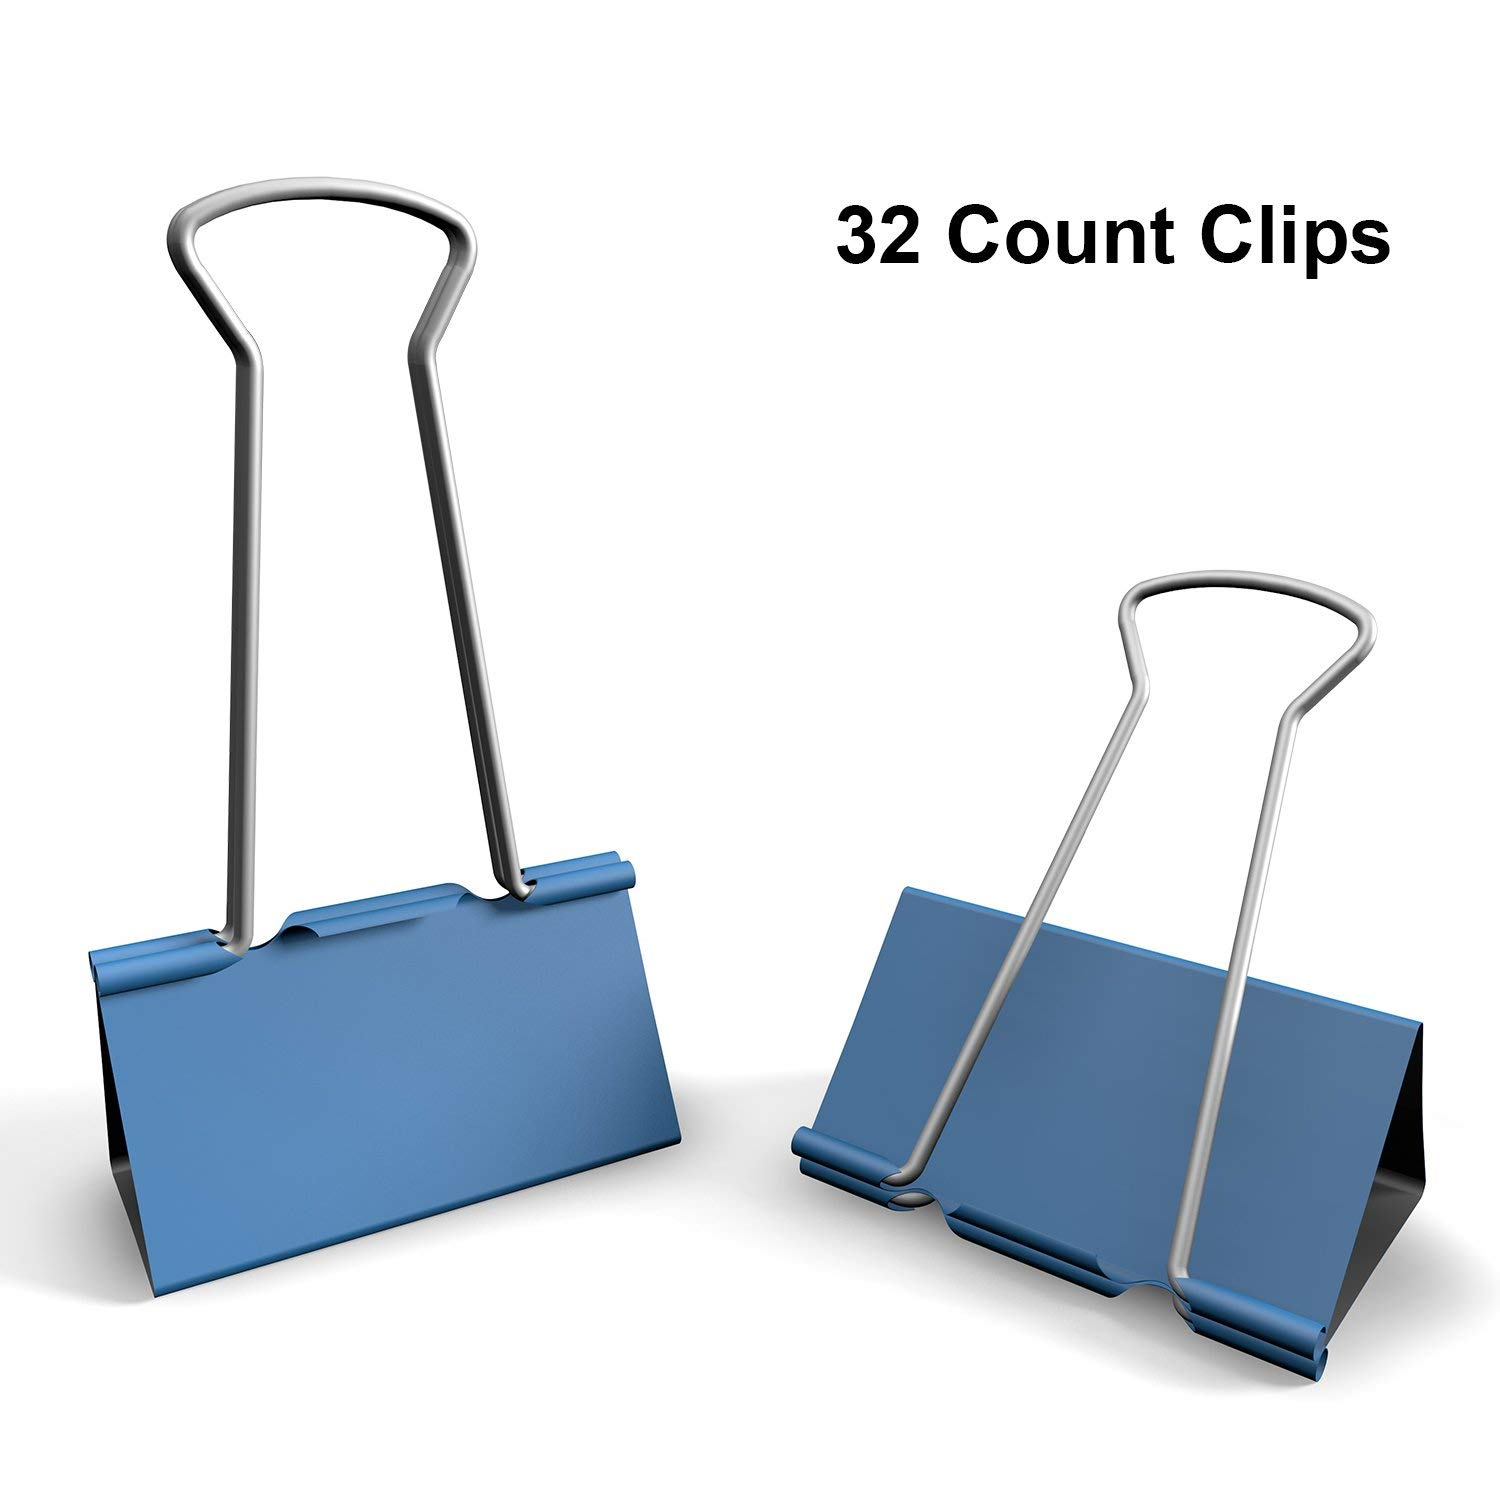 Nctinystore Blue Binder Clips Medium of 3/4 inch (19 mm) Colored Paper Clamp Assorted Size Assortment (Office or School Metal Fold Back Clip Metal Clips.) (0.75 in/19 mm)(Blue, 32 - Count)